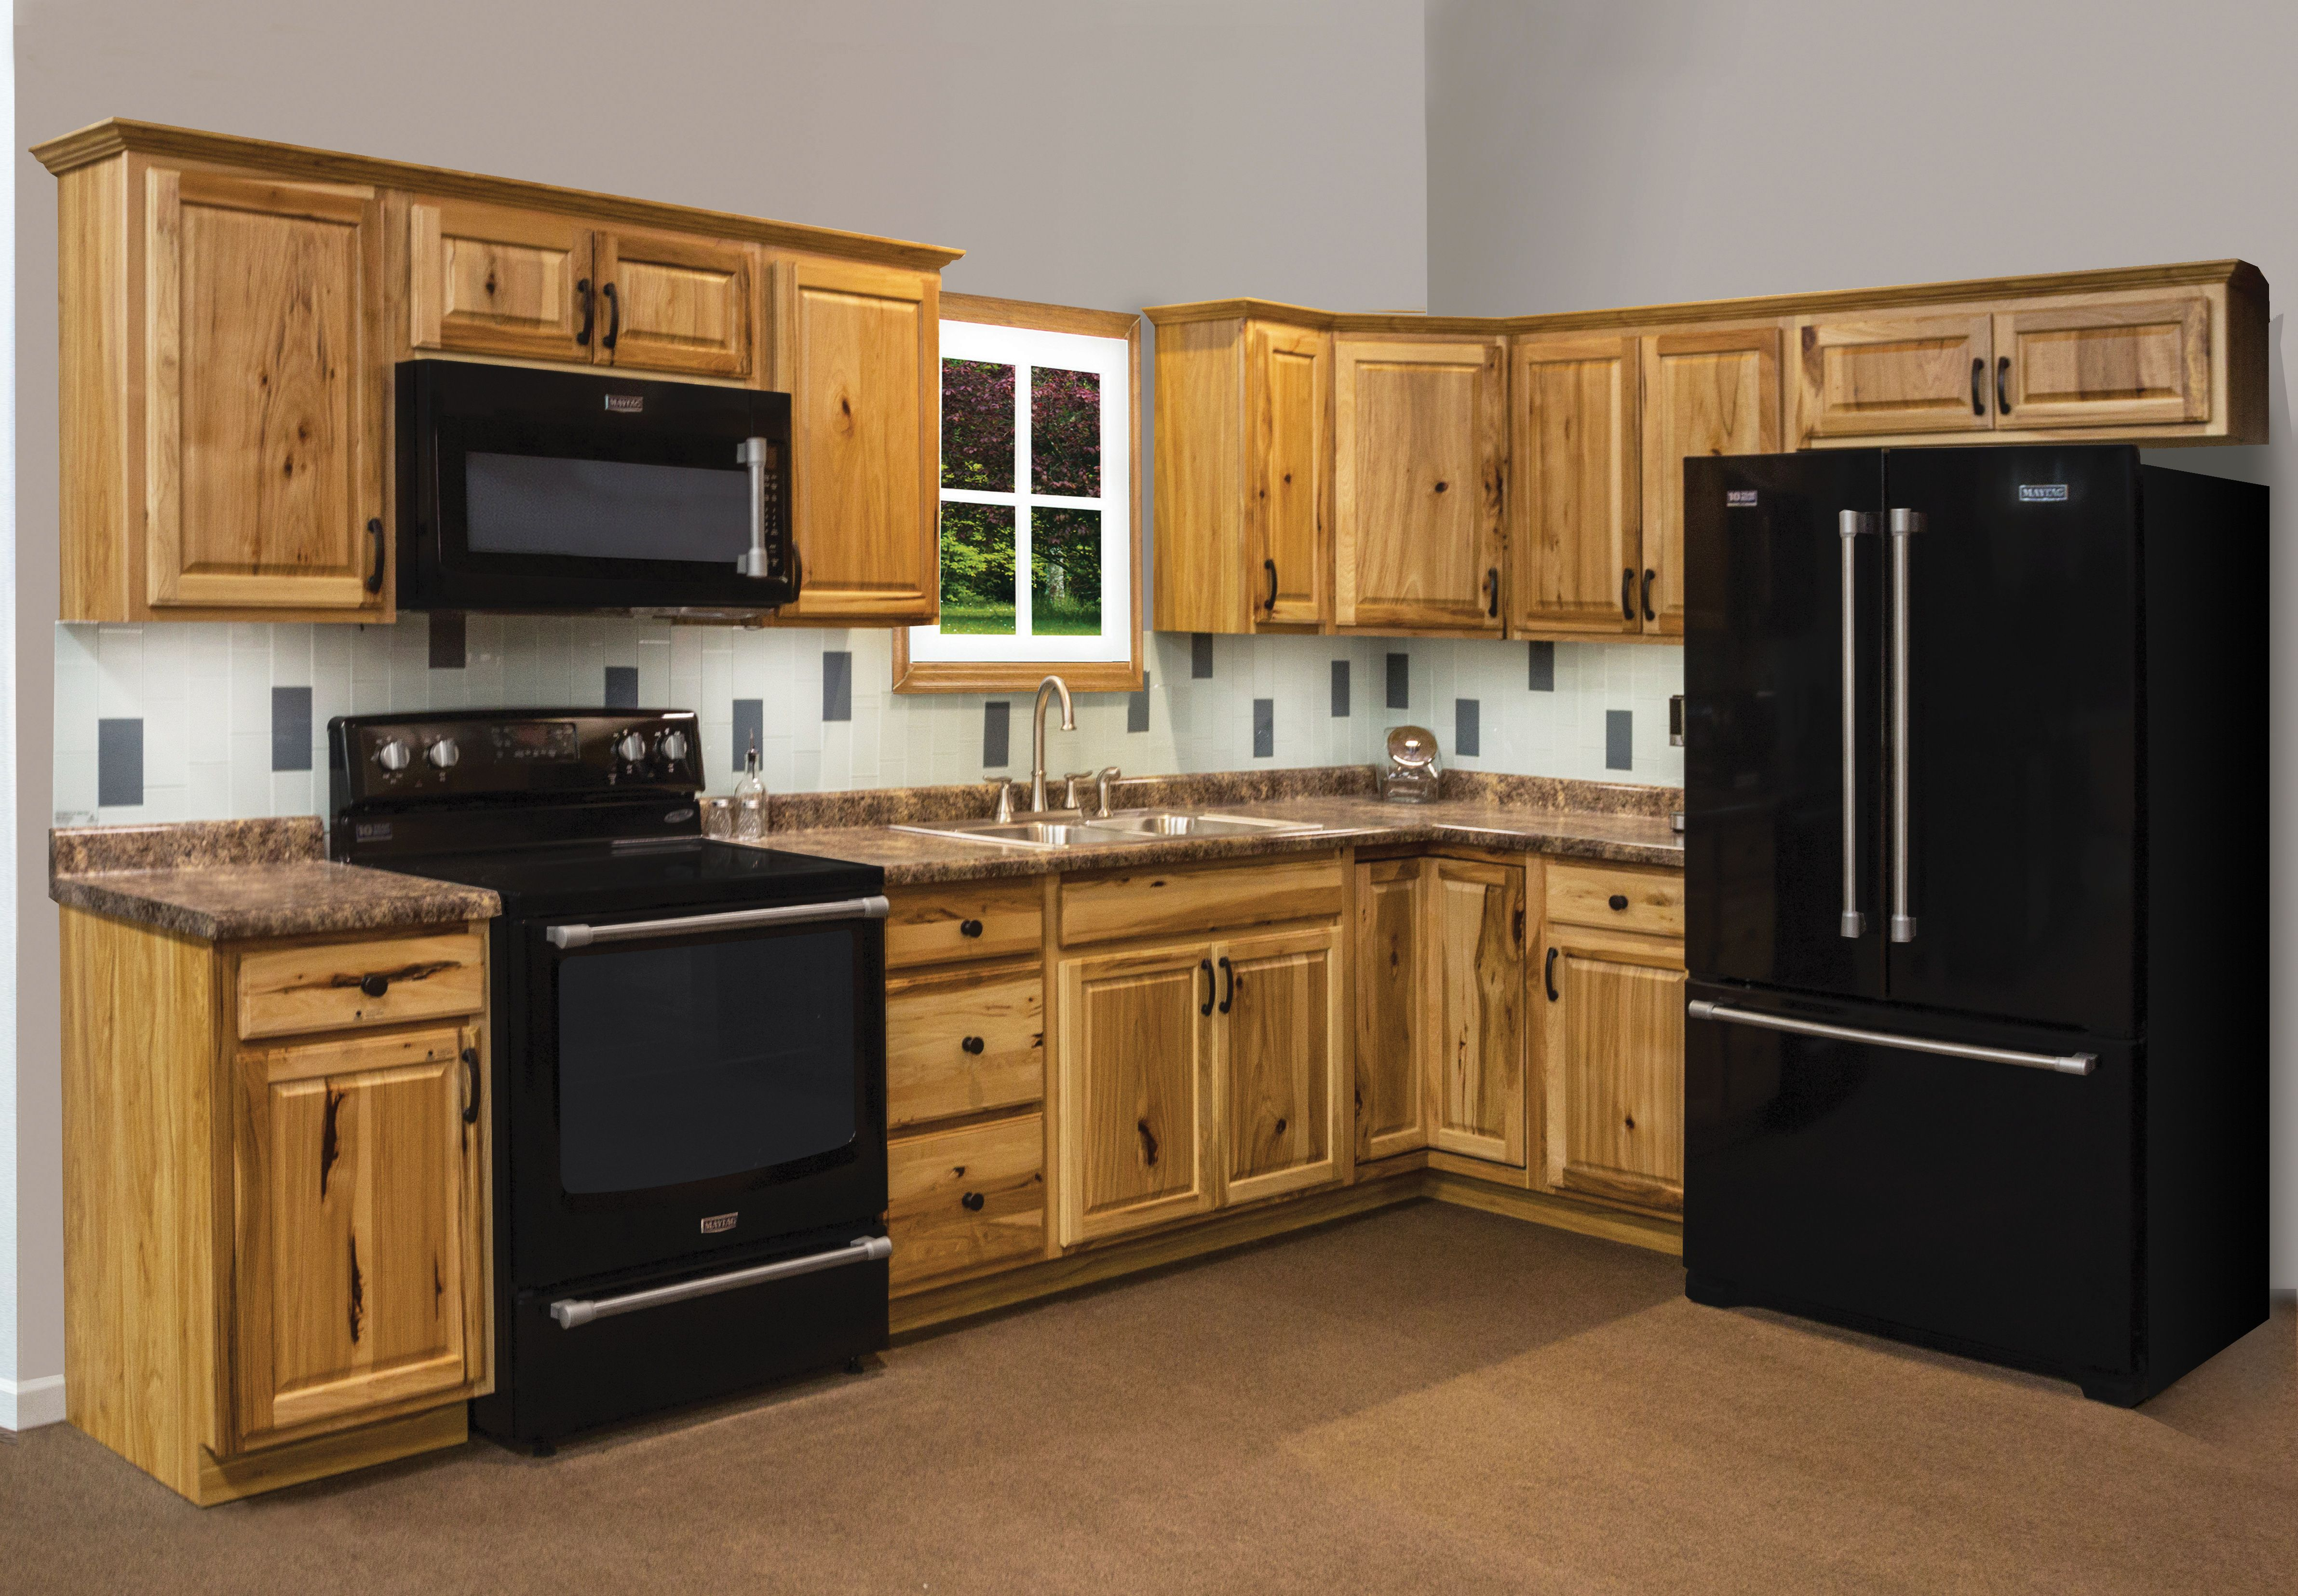 Denver Hickory Kitchen Cabinets Add A Rustic Look To Your Kitchen With Thunder Bay Hickory